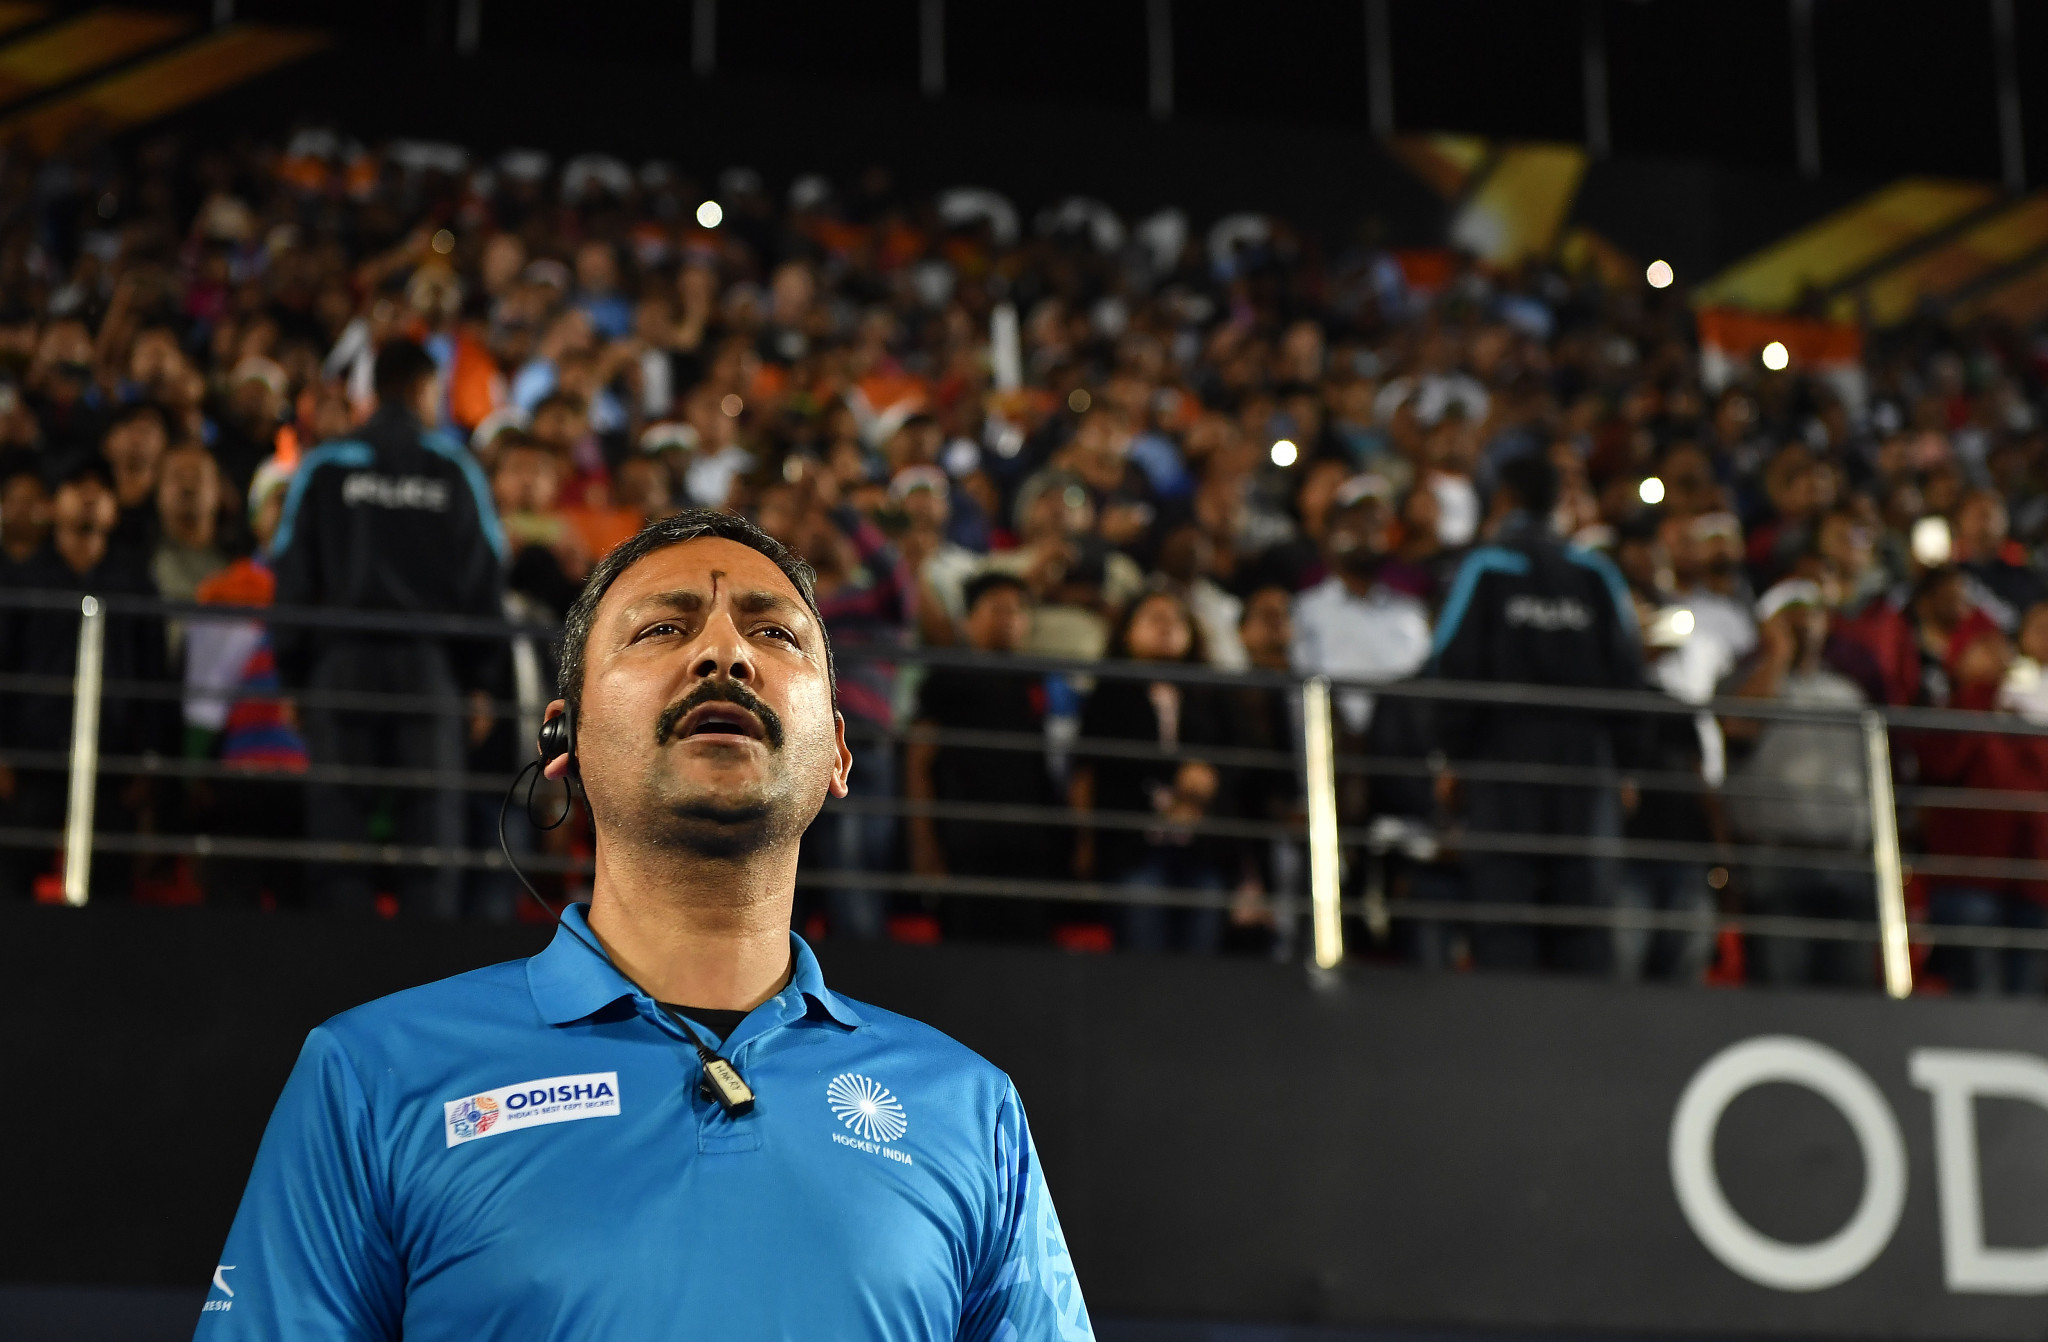 Sacked head coach claims Hockey India interfered with team selection for World Cup